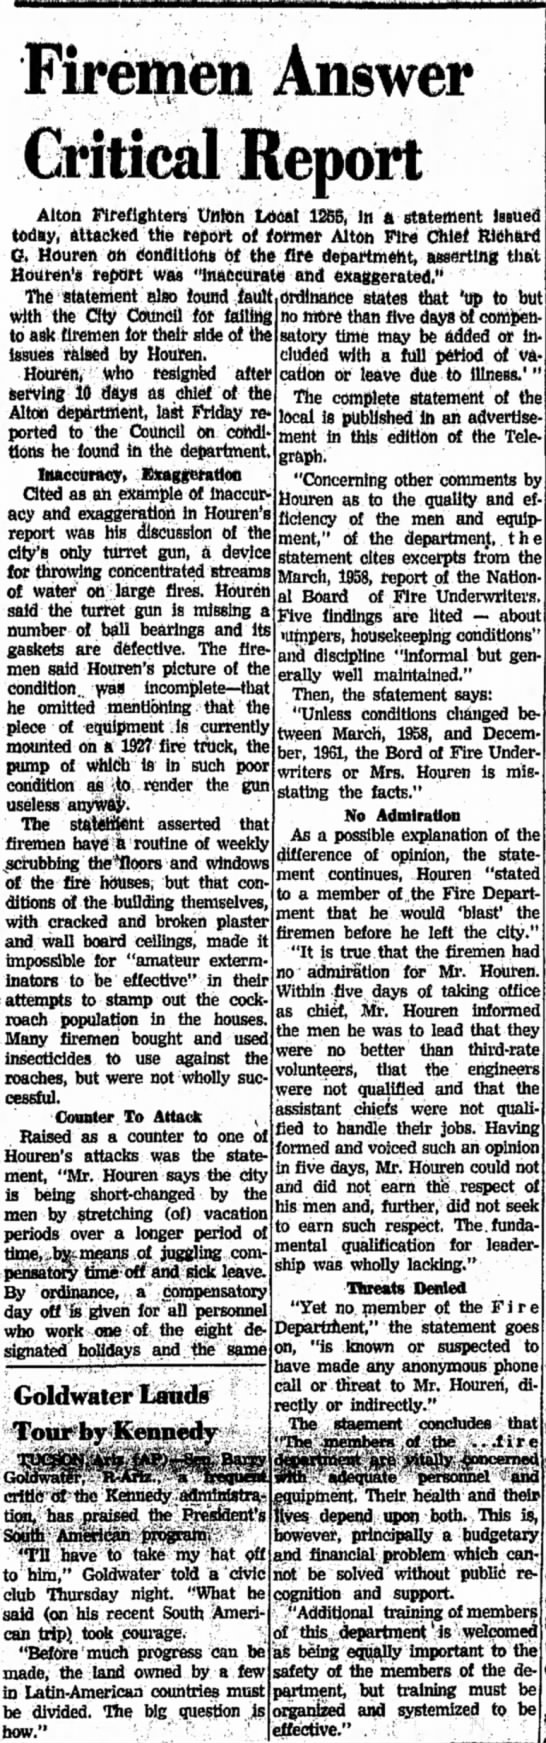 Richard George Houren